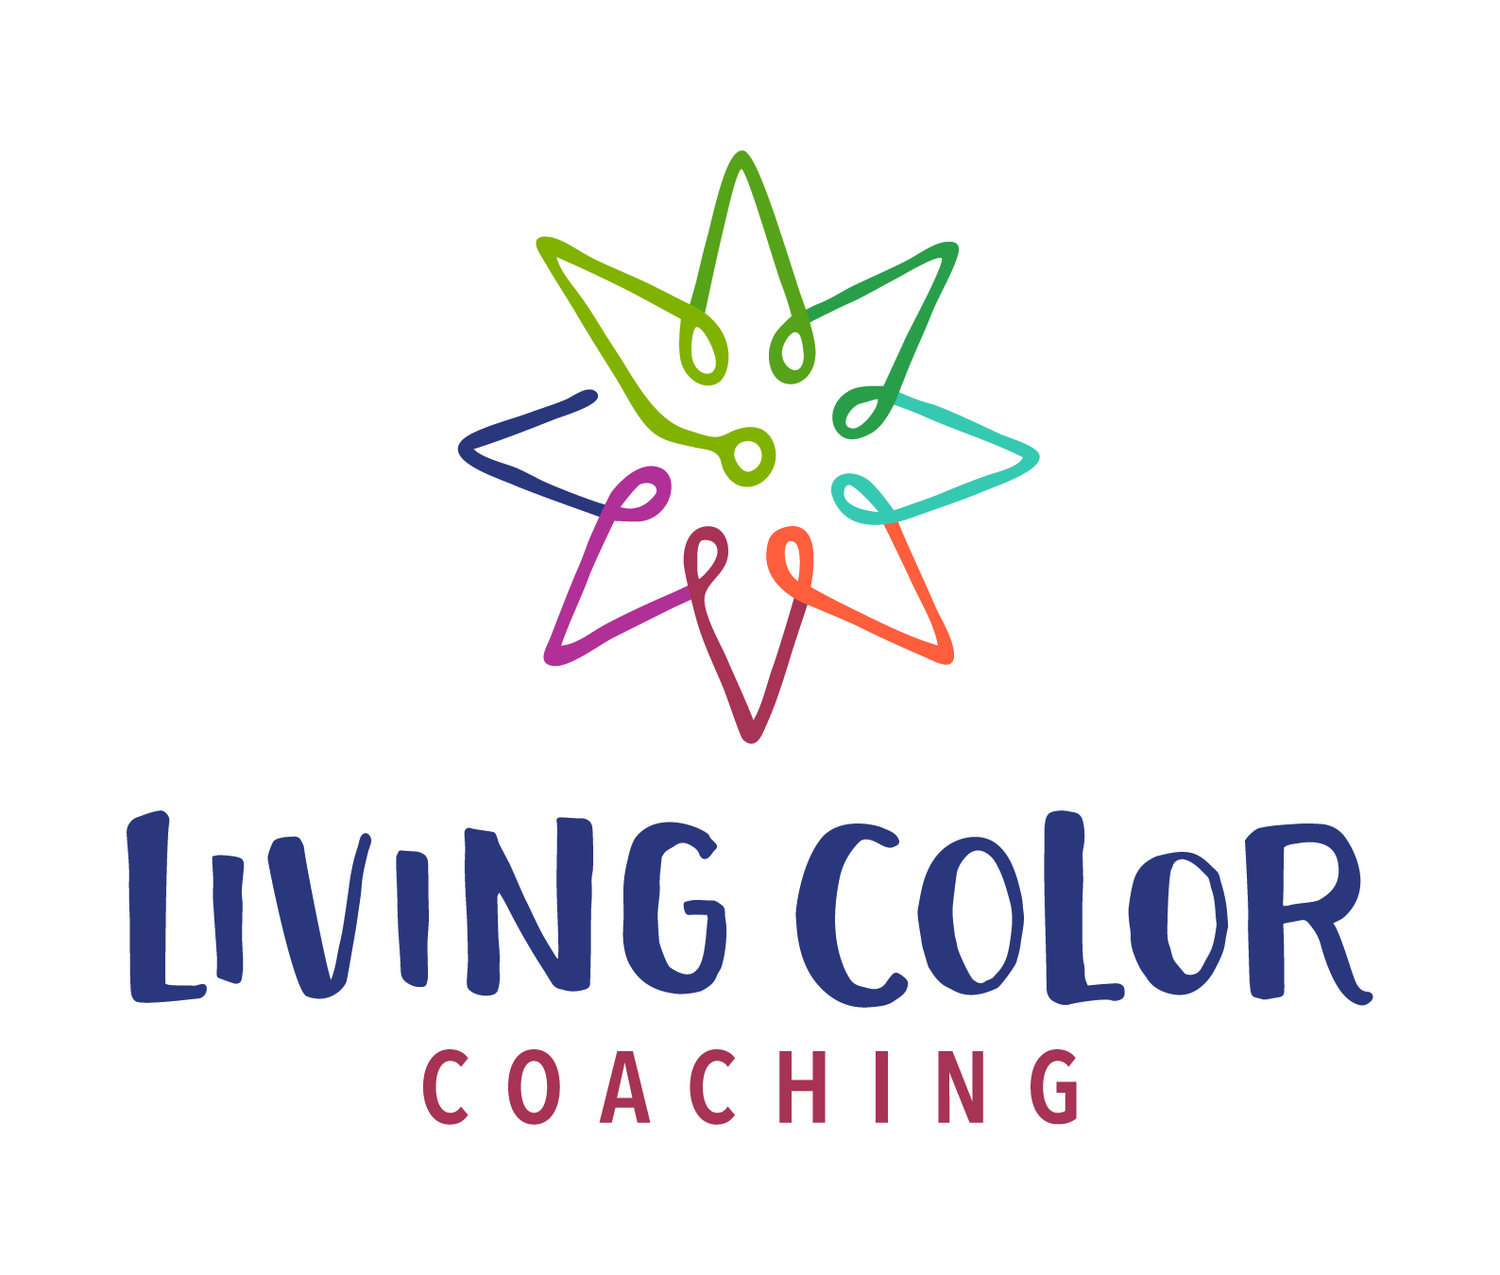 Living Color Coaching